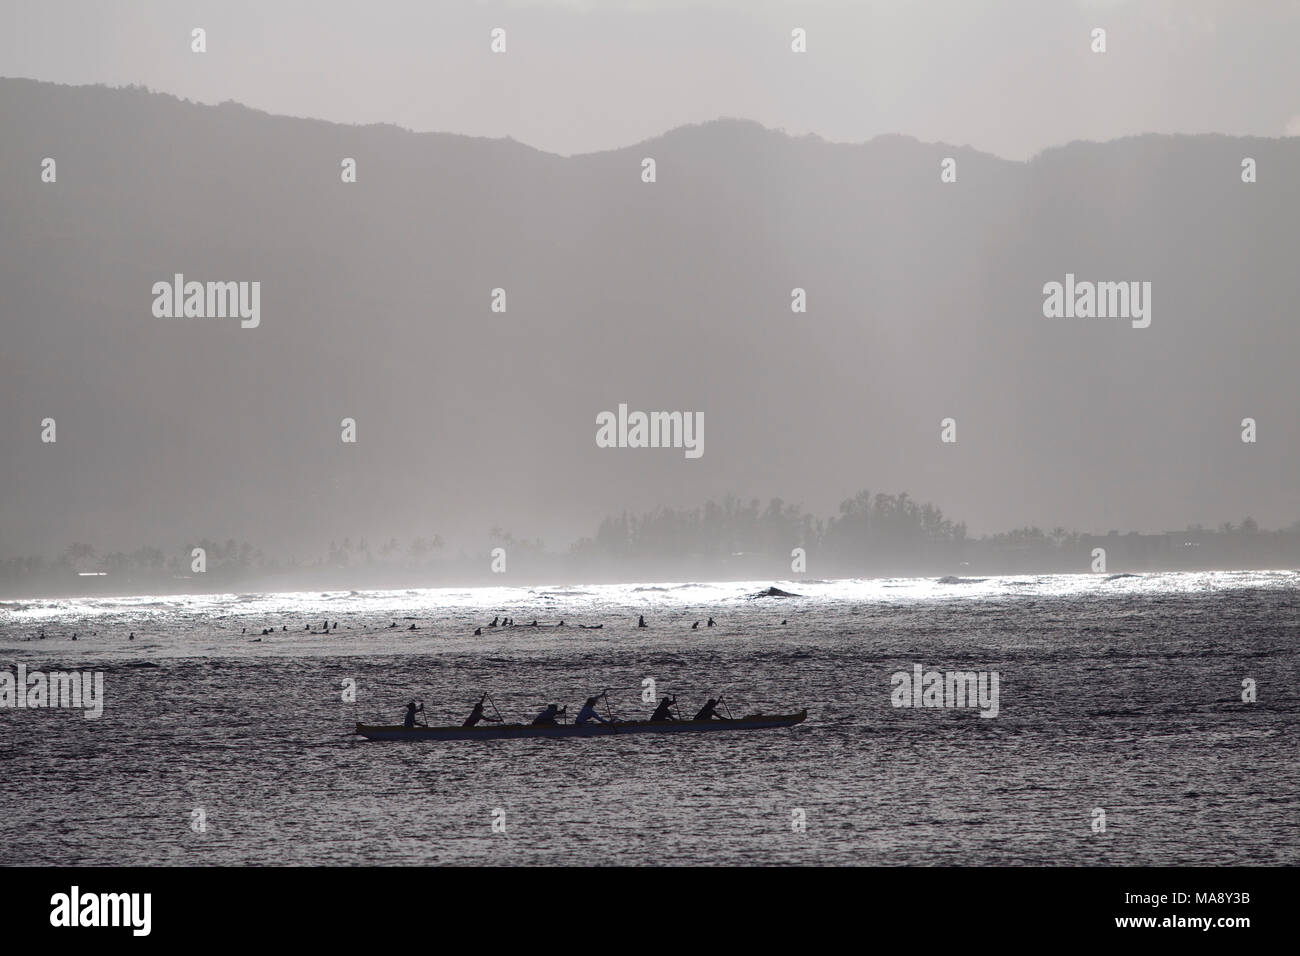 Outrigger canoes on the North Shore of Oahu near Haleiwa. Stock Photo